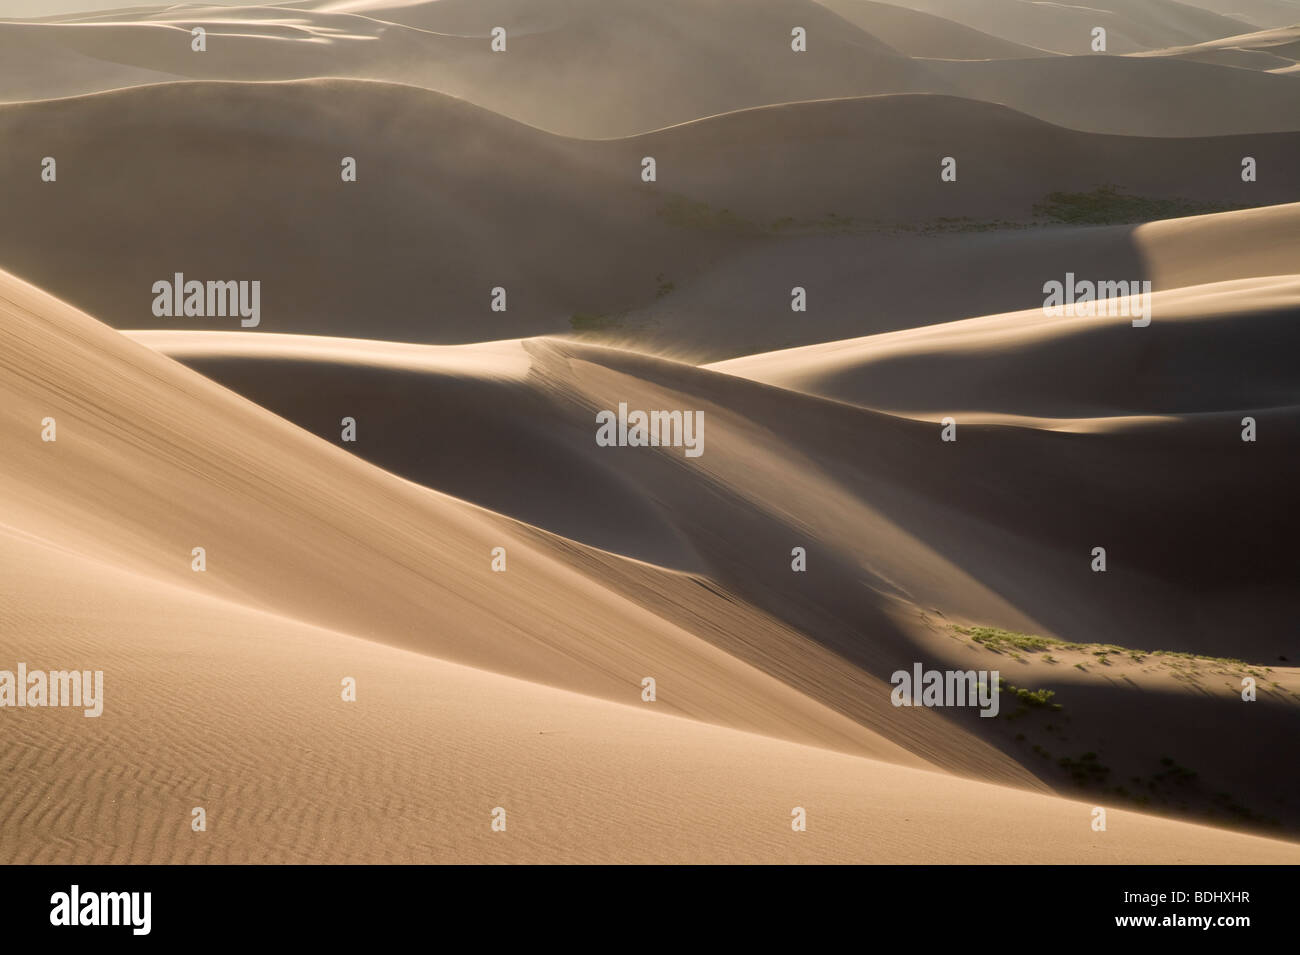 dunes and blowing sand, Great Sand Dunes National Park, Colorado - Stock Image